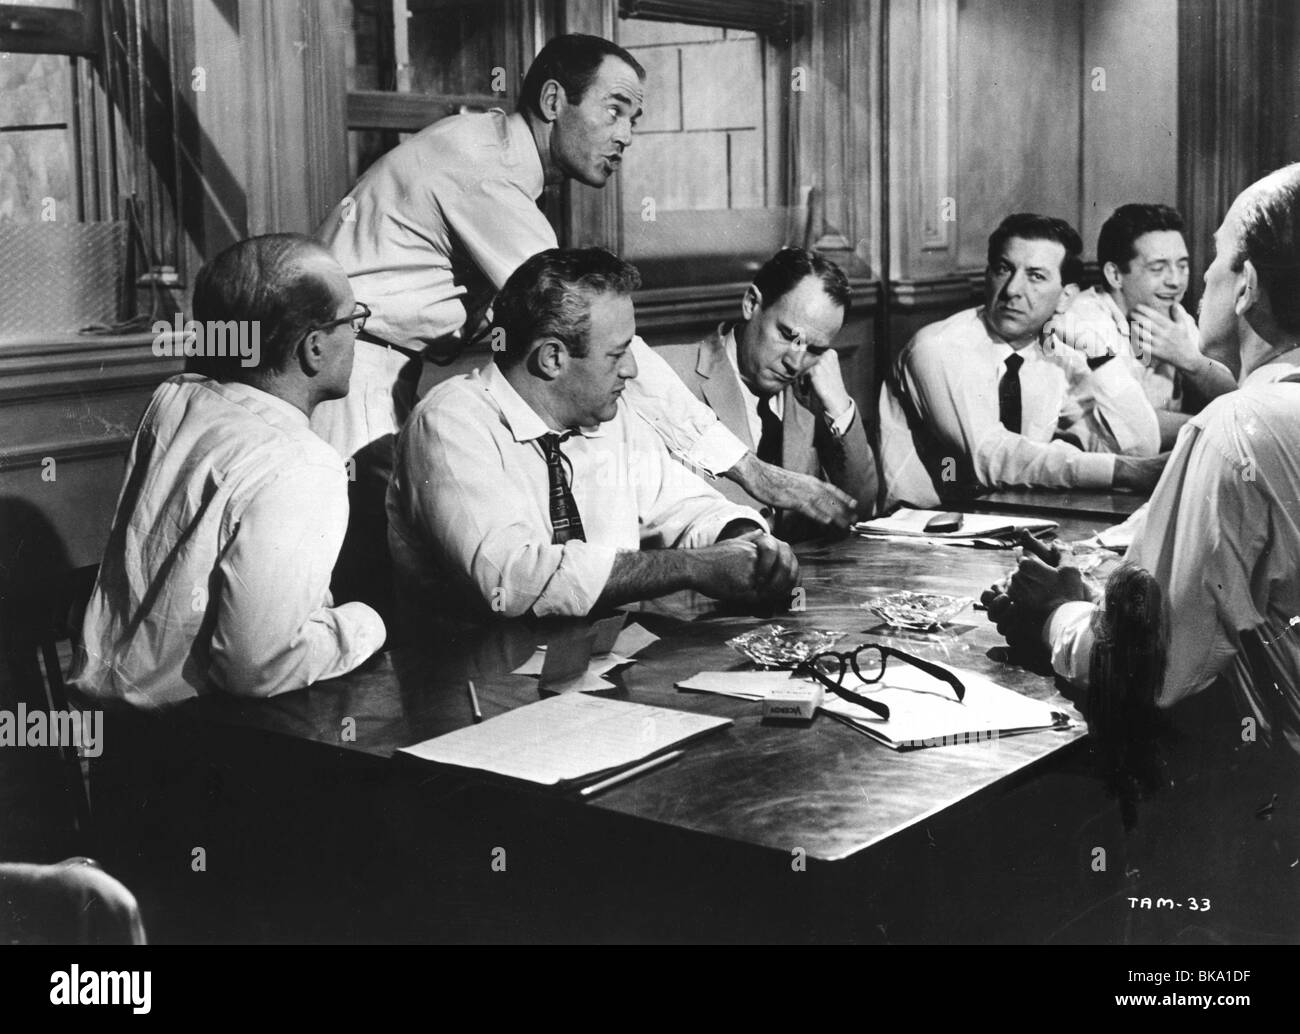 TWELVE ANGRY MEN (1957) (2ND FROM L) HENRY FONDA, LEE J. COBB, (3RD FROM RIGHT) JACK KLUGMAN TAM 006P - Stock Image